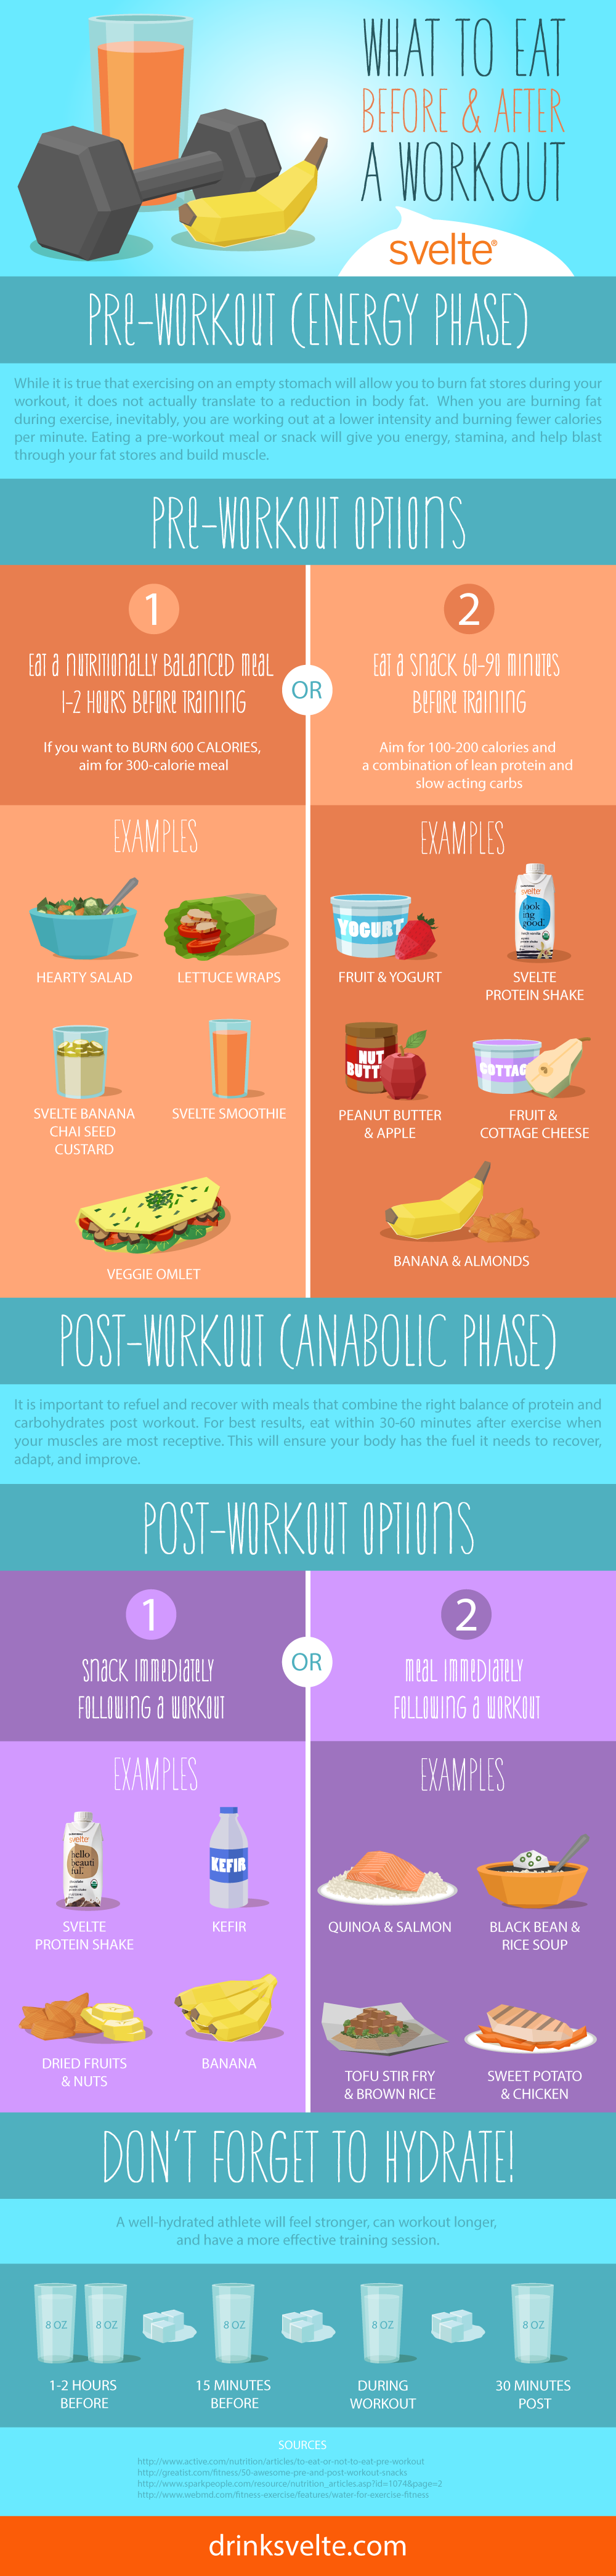 Infographic: What to Eat Before and After Your Workout